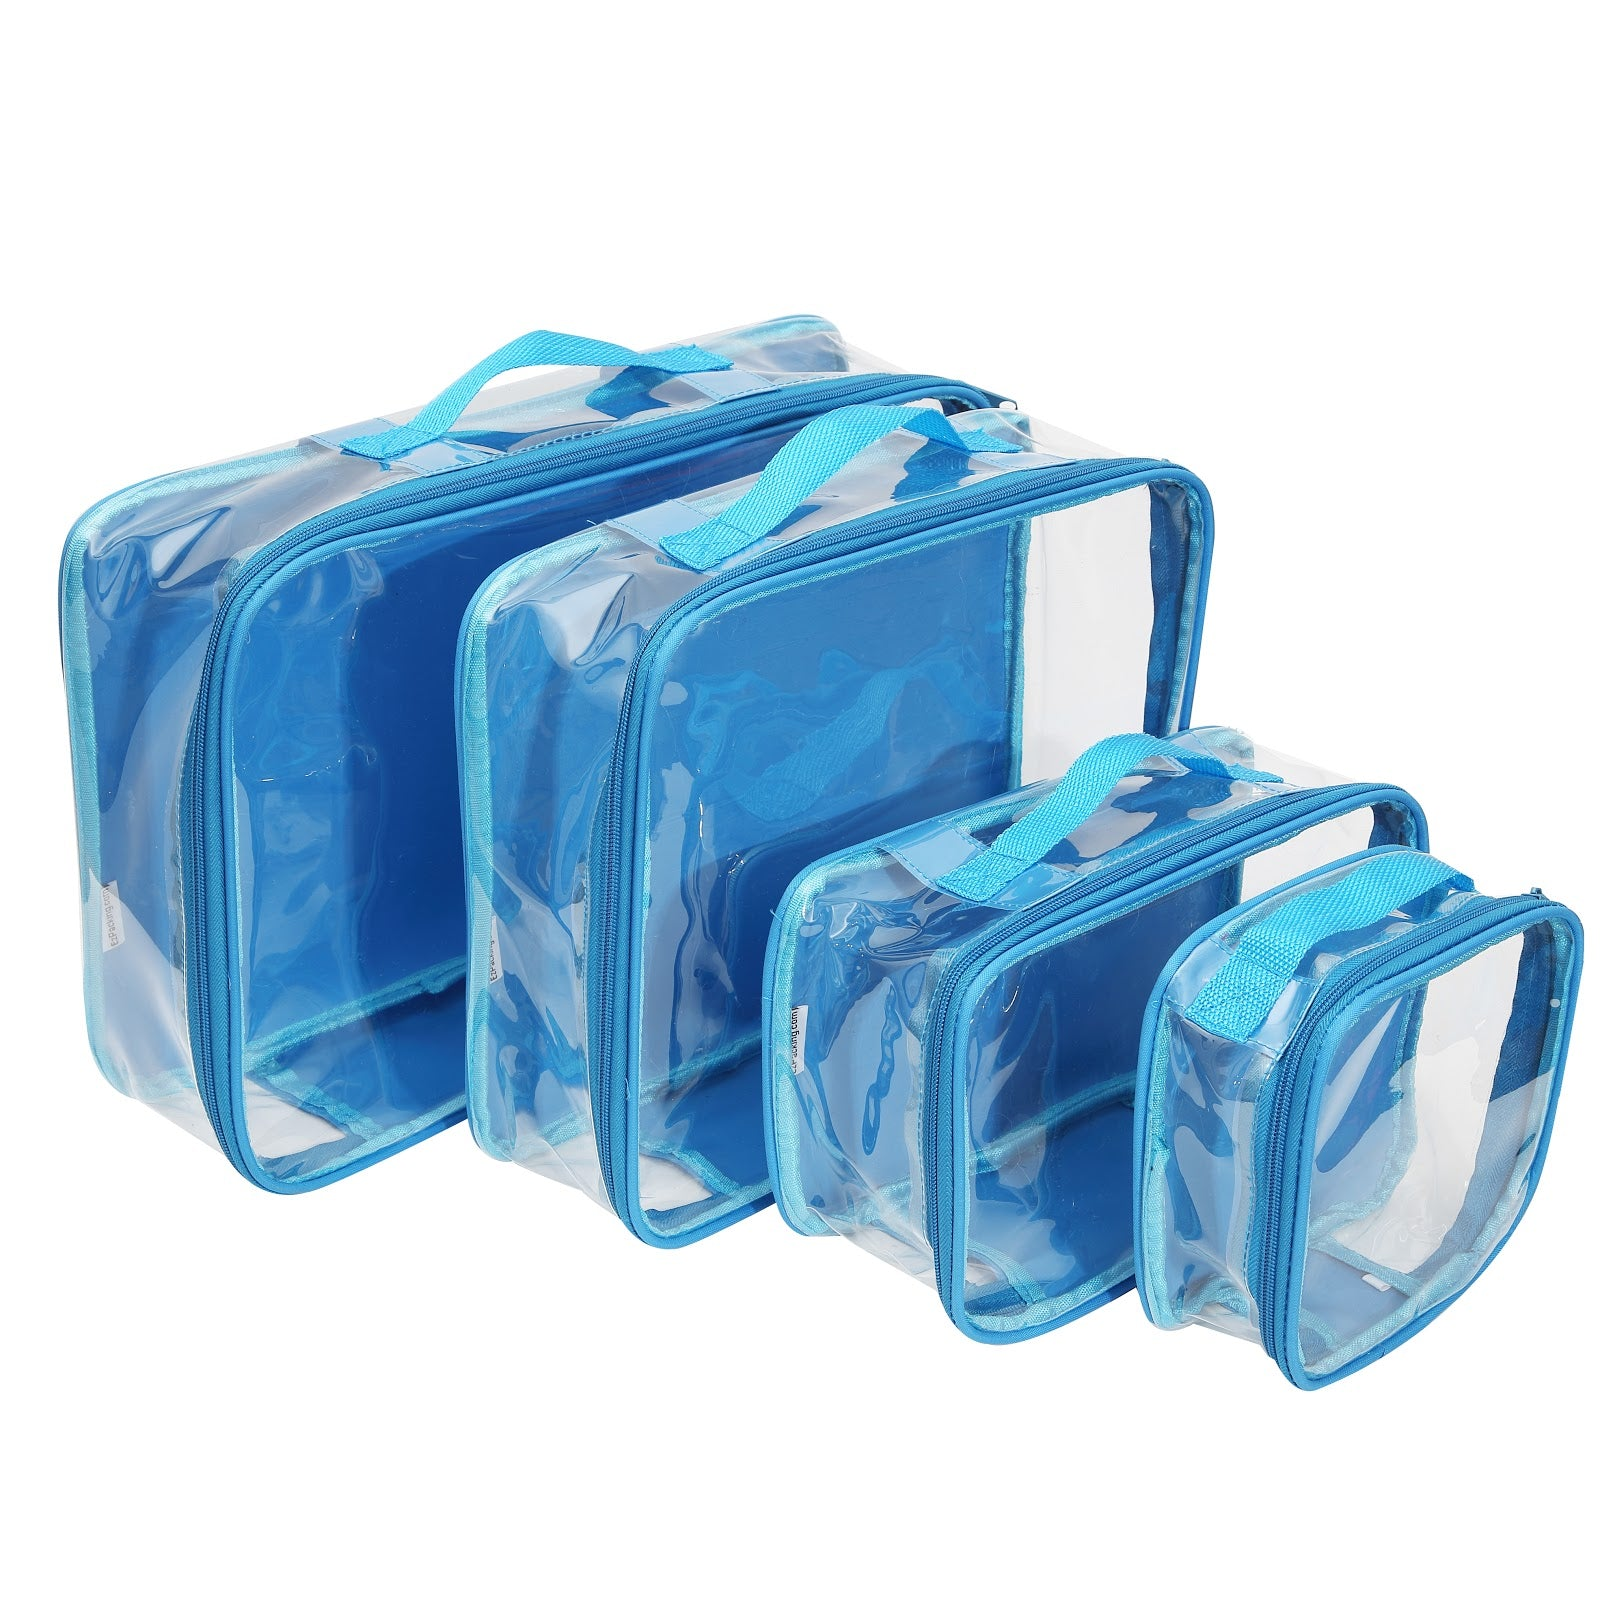 Turquoise packing cubes for travel backpack